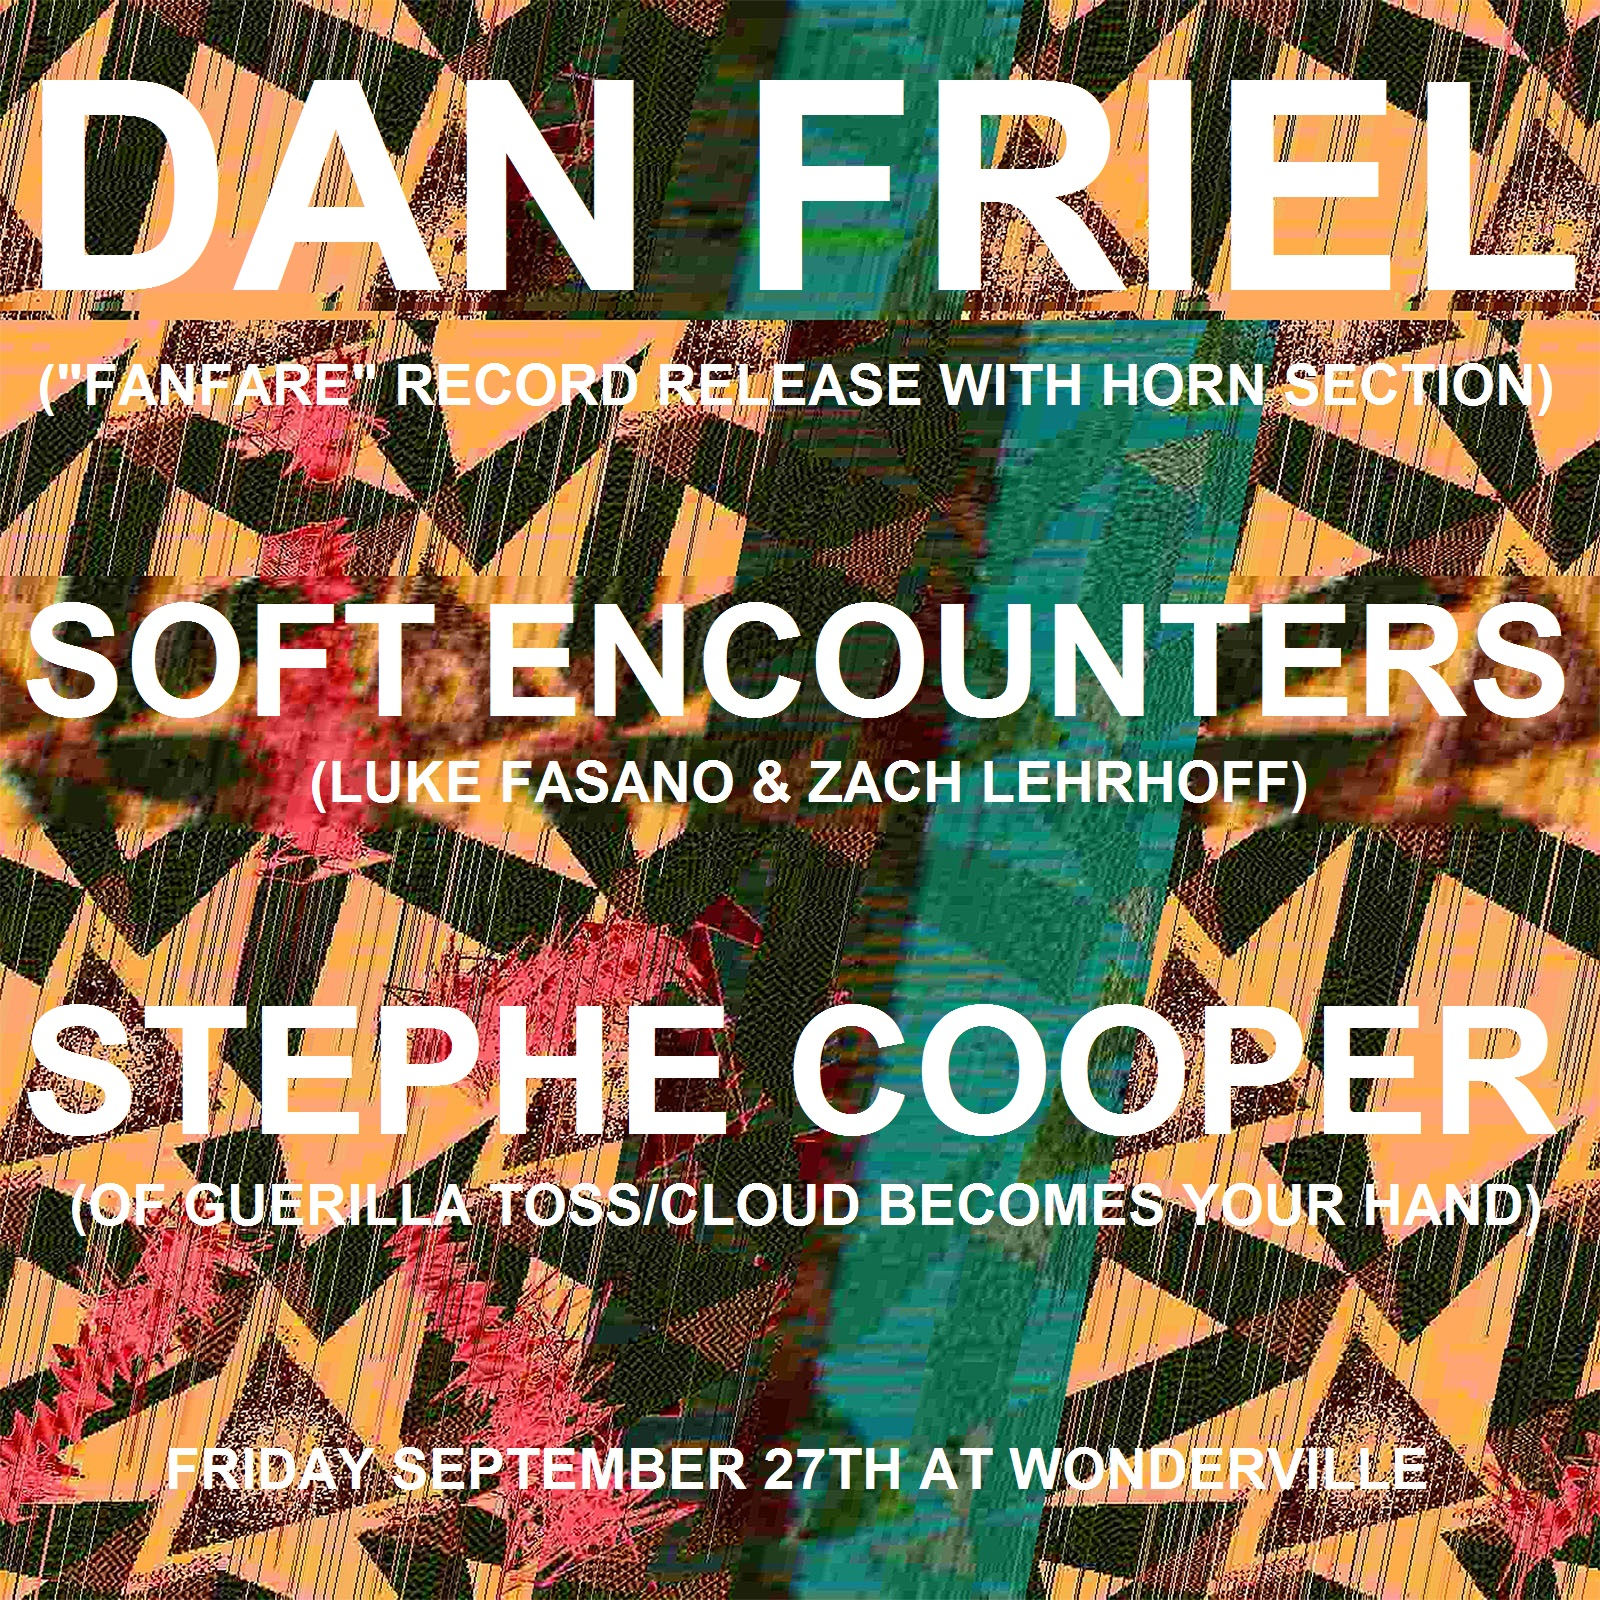 Tickets:  https://withfriends.co/Event/2468444/Dan_Friel_record_release_show_w_Soft_Encounters_and_Stephe_Cooper